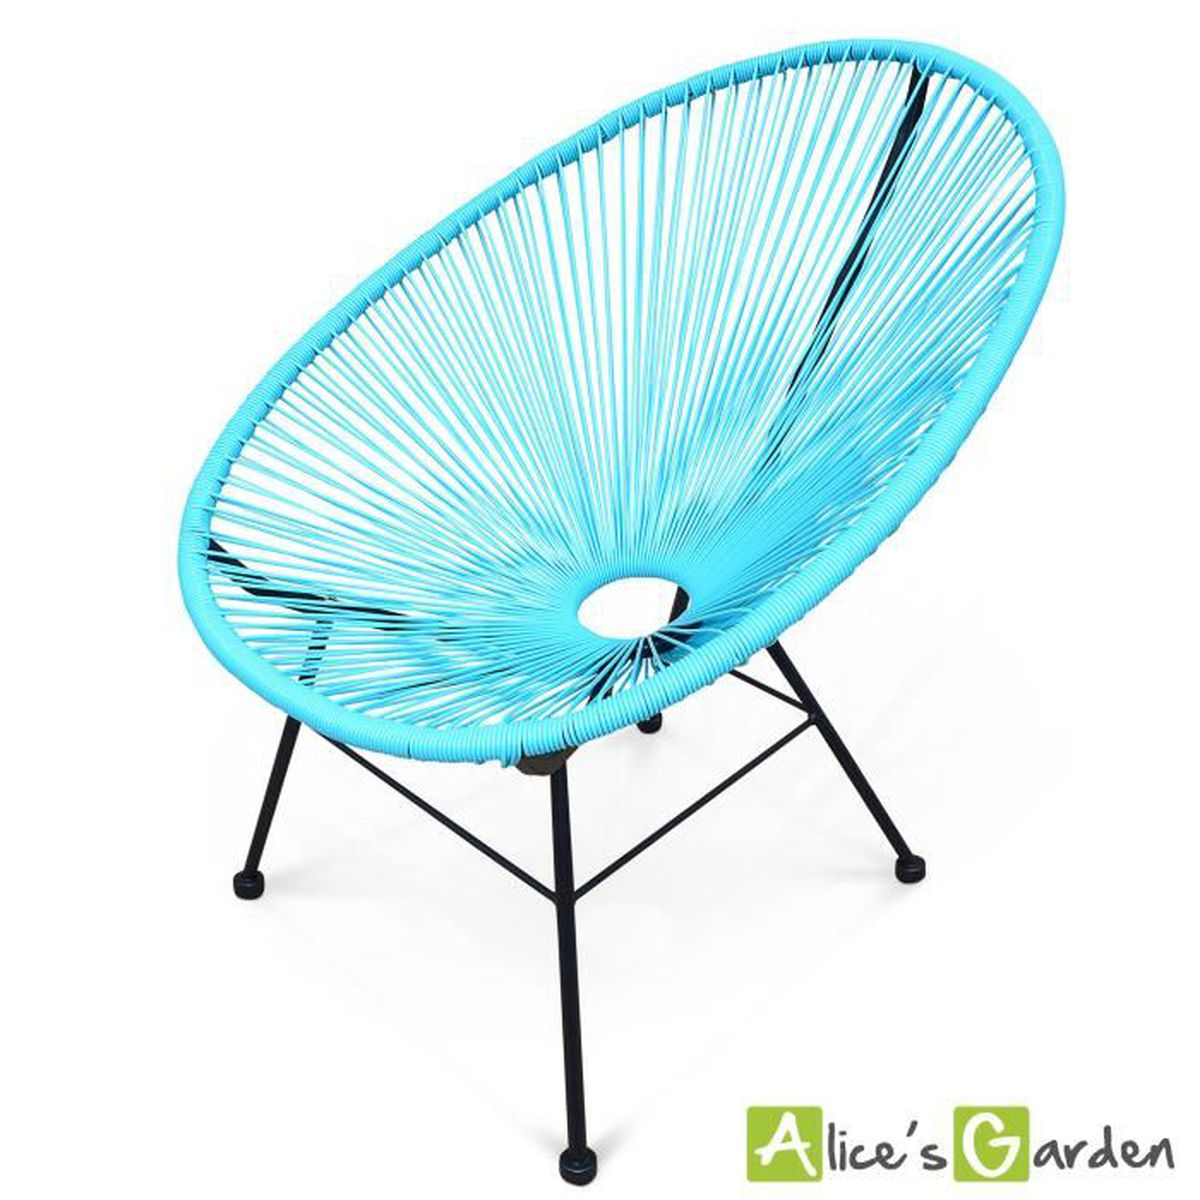 fauteuil acapulco chaise oeuf design r tro cordage turquoise achat vente fauteuil jardin. Black Bedroom Furniture Sets. Home Design Ideas